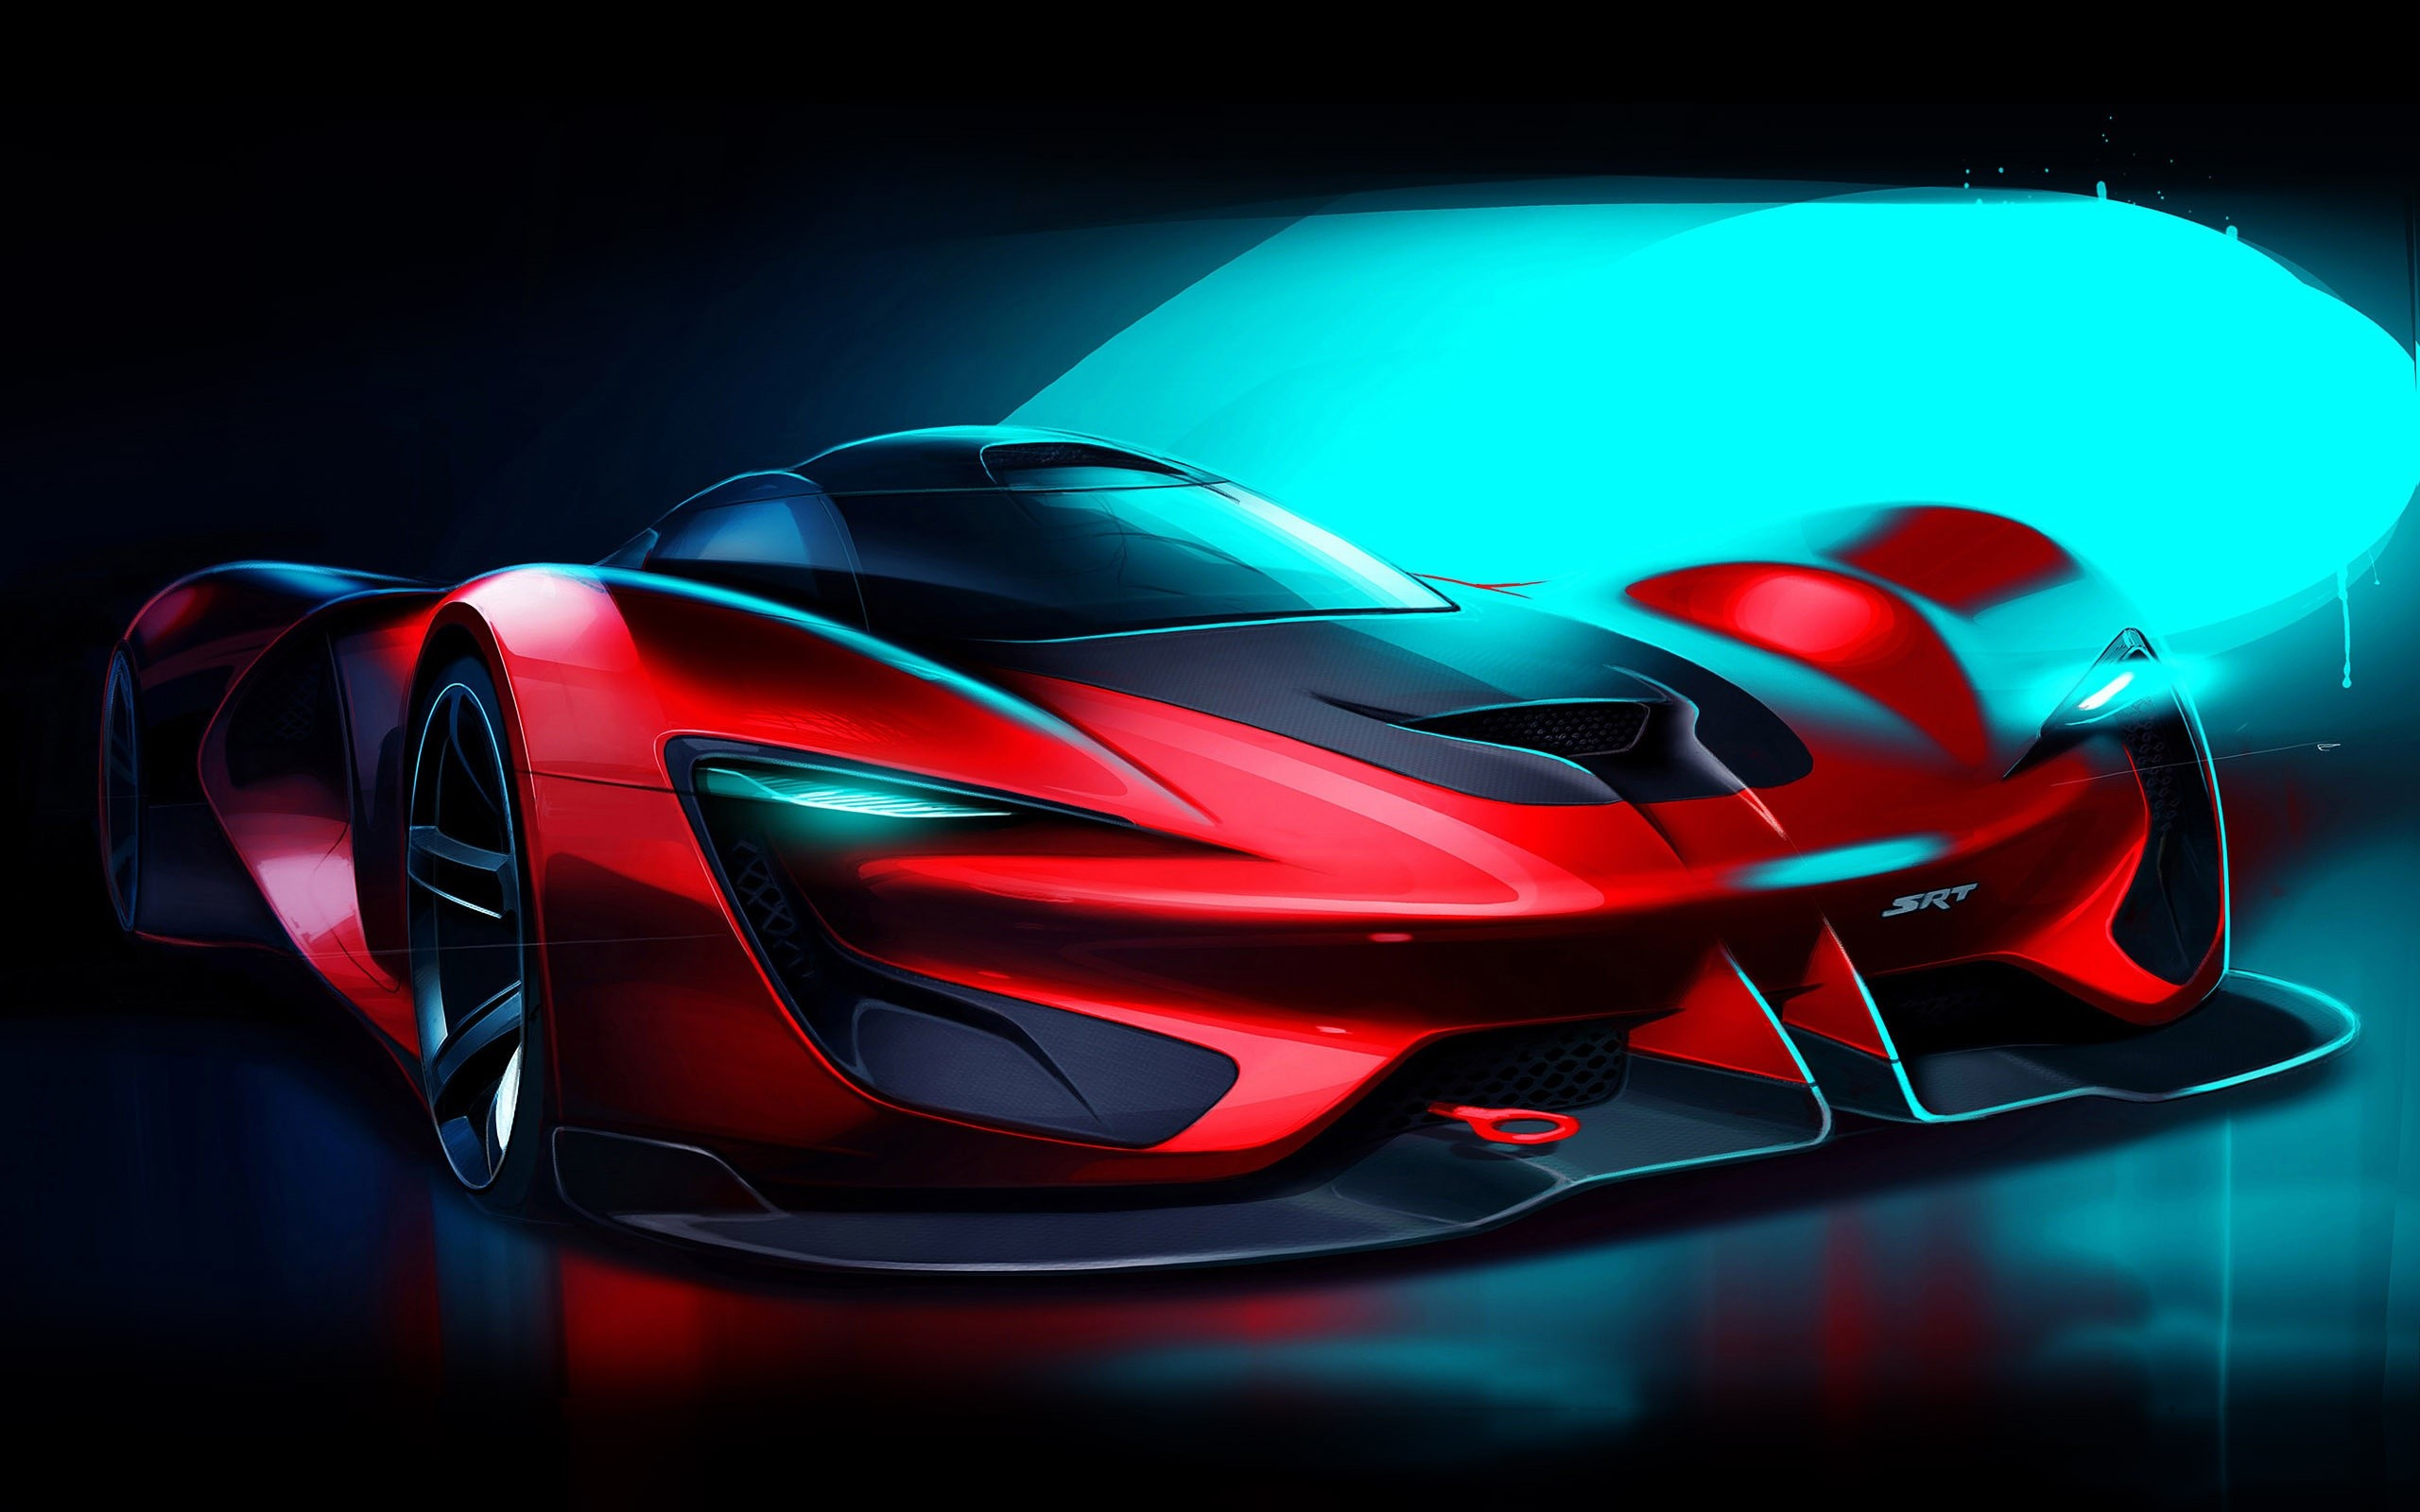 Wallpaper SRT Tomahawk Vision in Gran Turismo